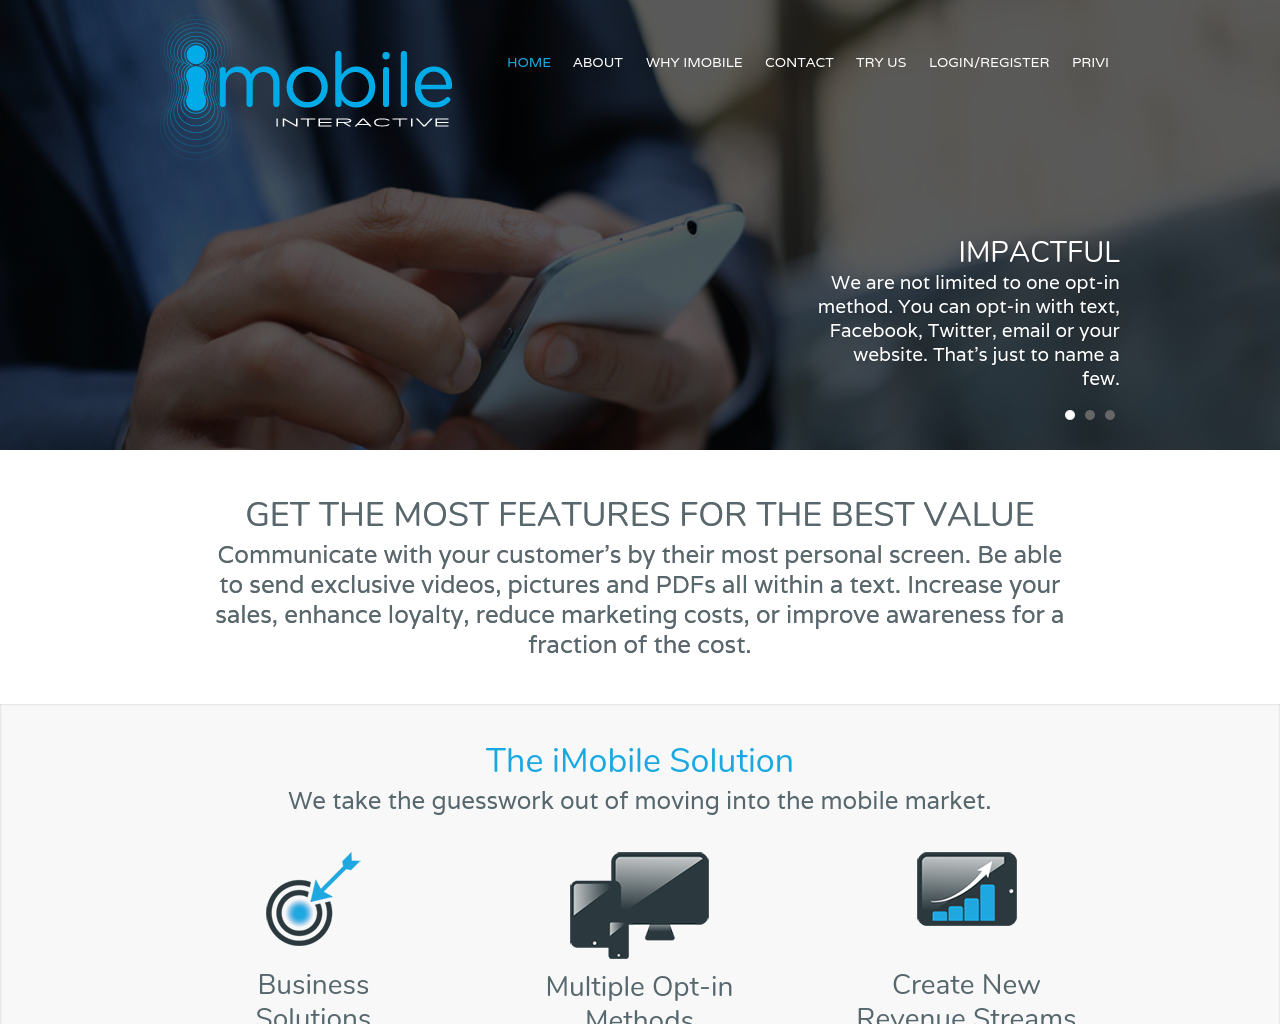 IMobile-Interactive-Advertising-Reviews-Pricing